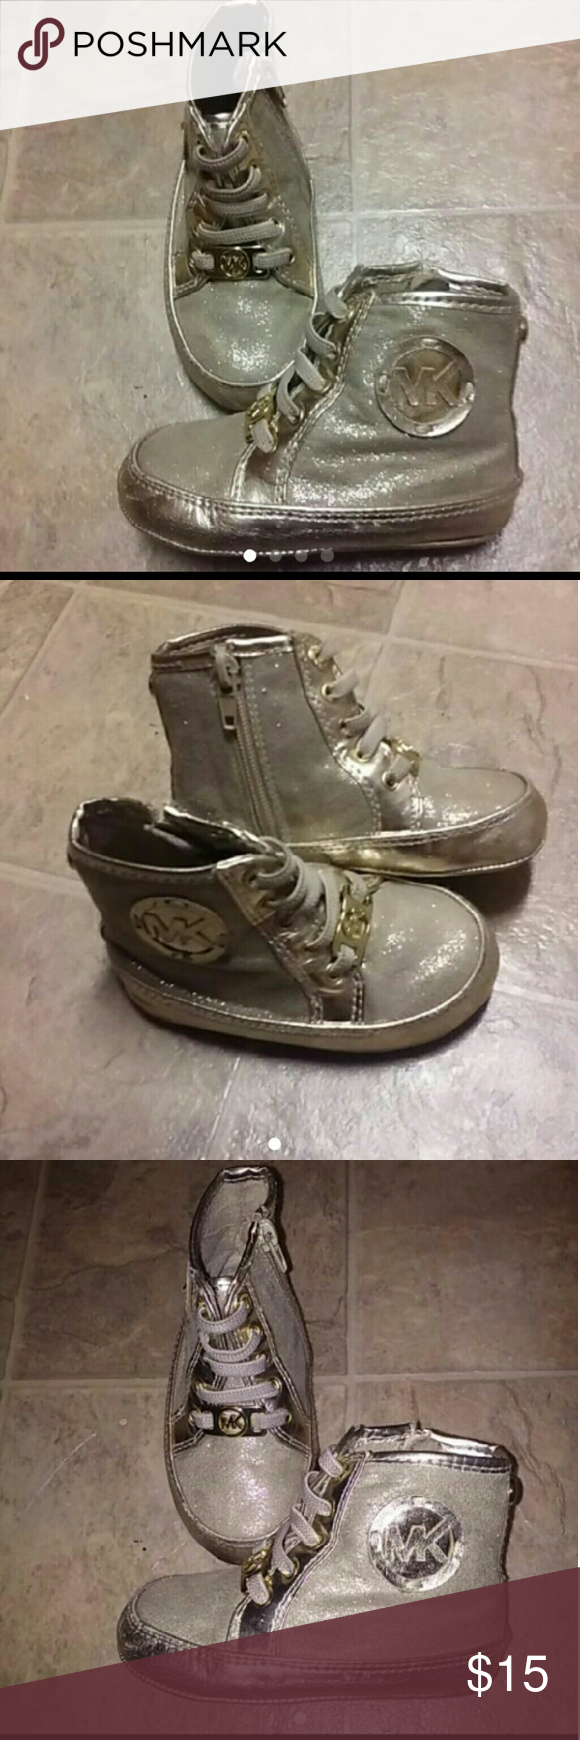 Michael Kors 4c Gold Boots Gold Michael Kors zip-up boots size 4c. In great condition only worn a couple times before my daughter outgrew them. Michael Kors Shoes Boots